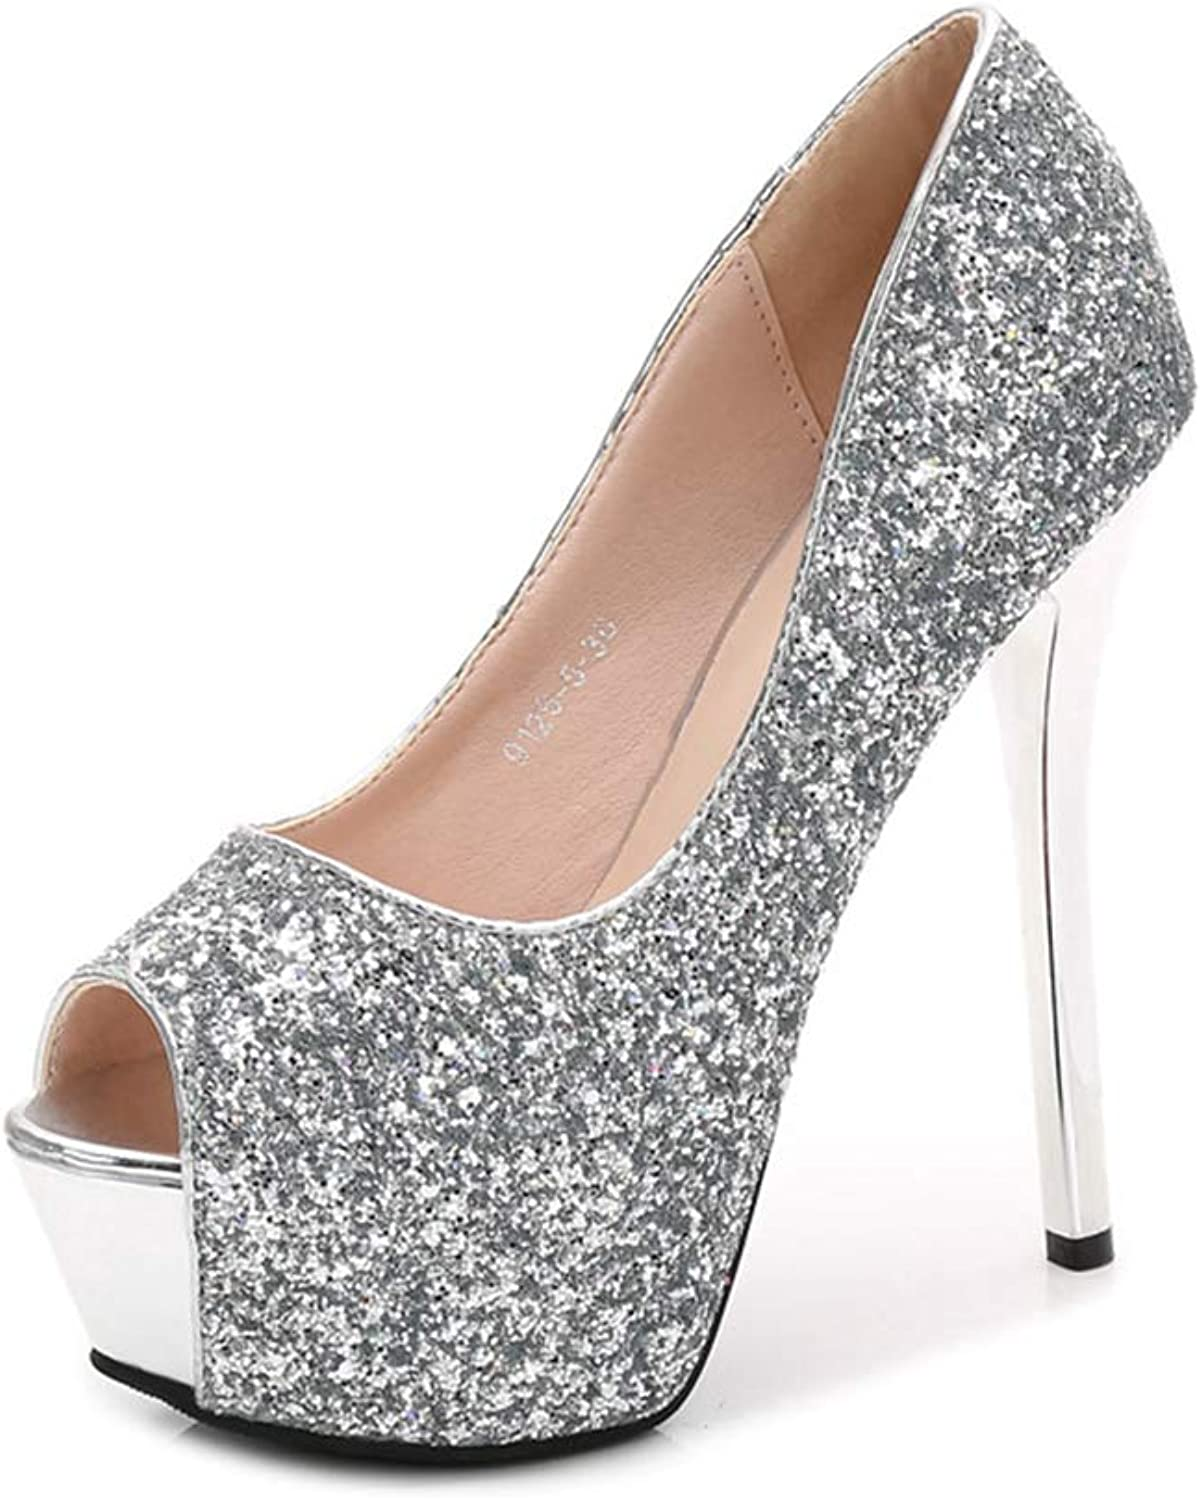 Sam Carle Womens Pumps,Super High Heel Fish Mouth Bling Sequined Rhinestone Nightclub Pump